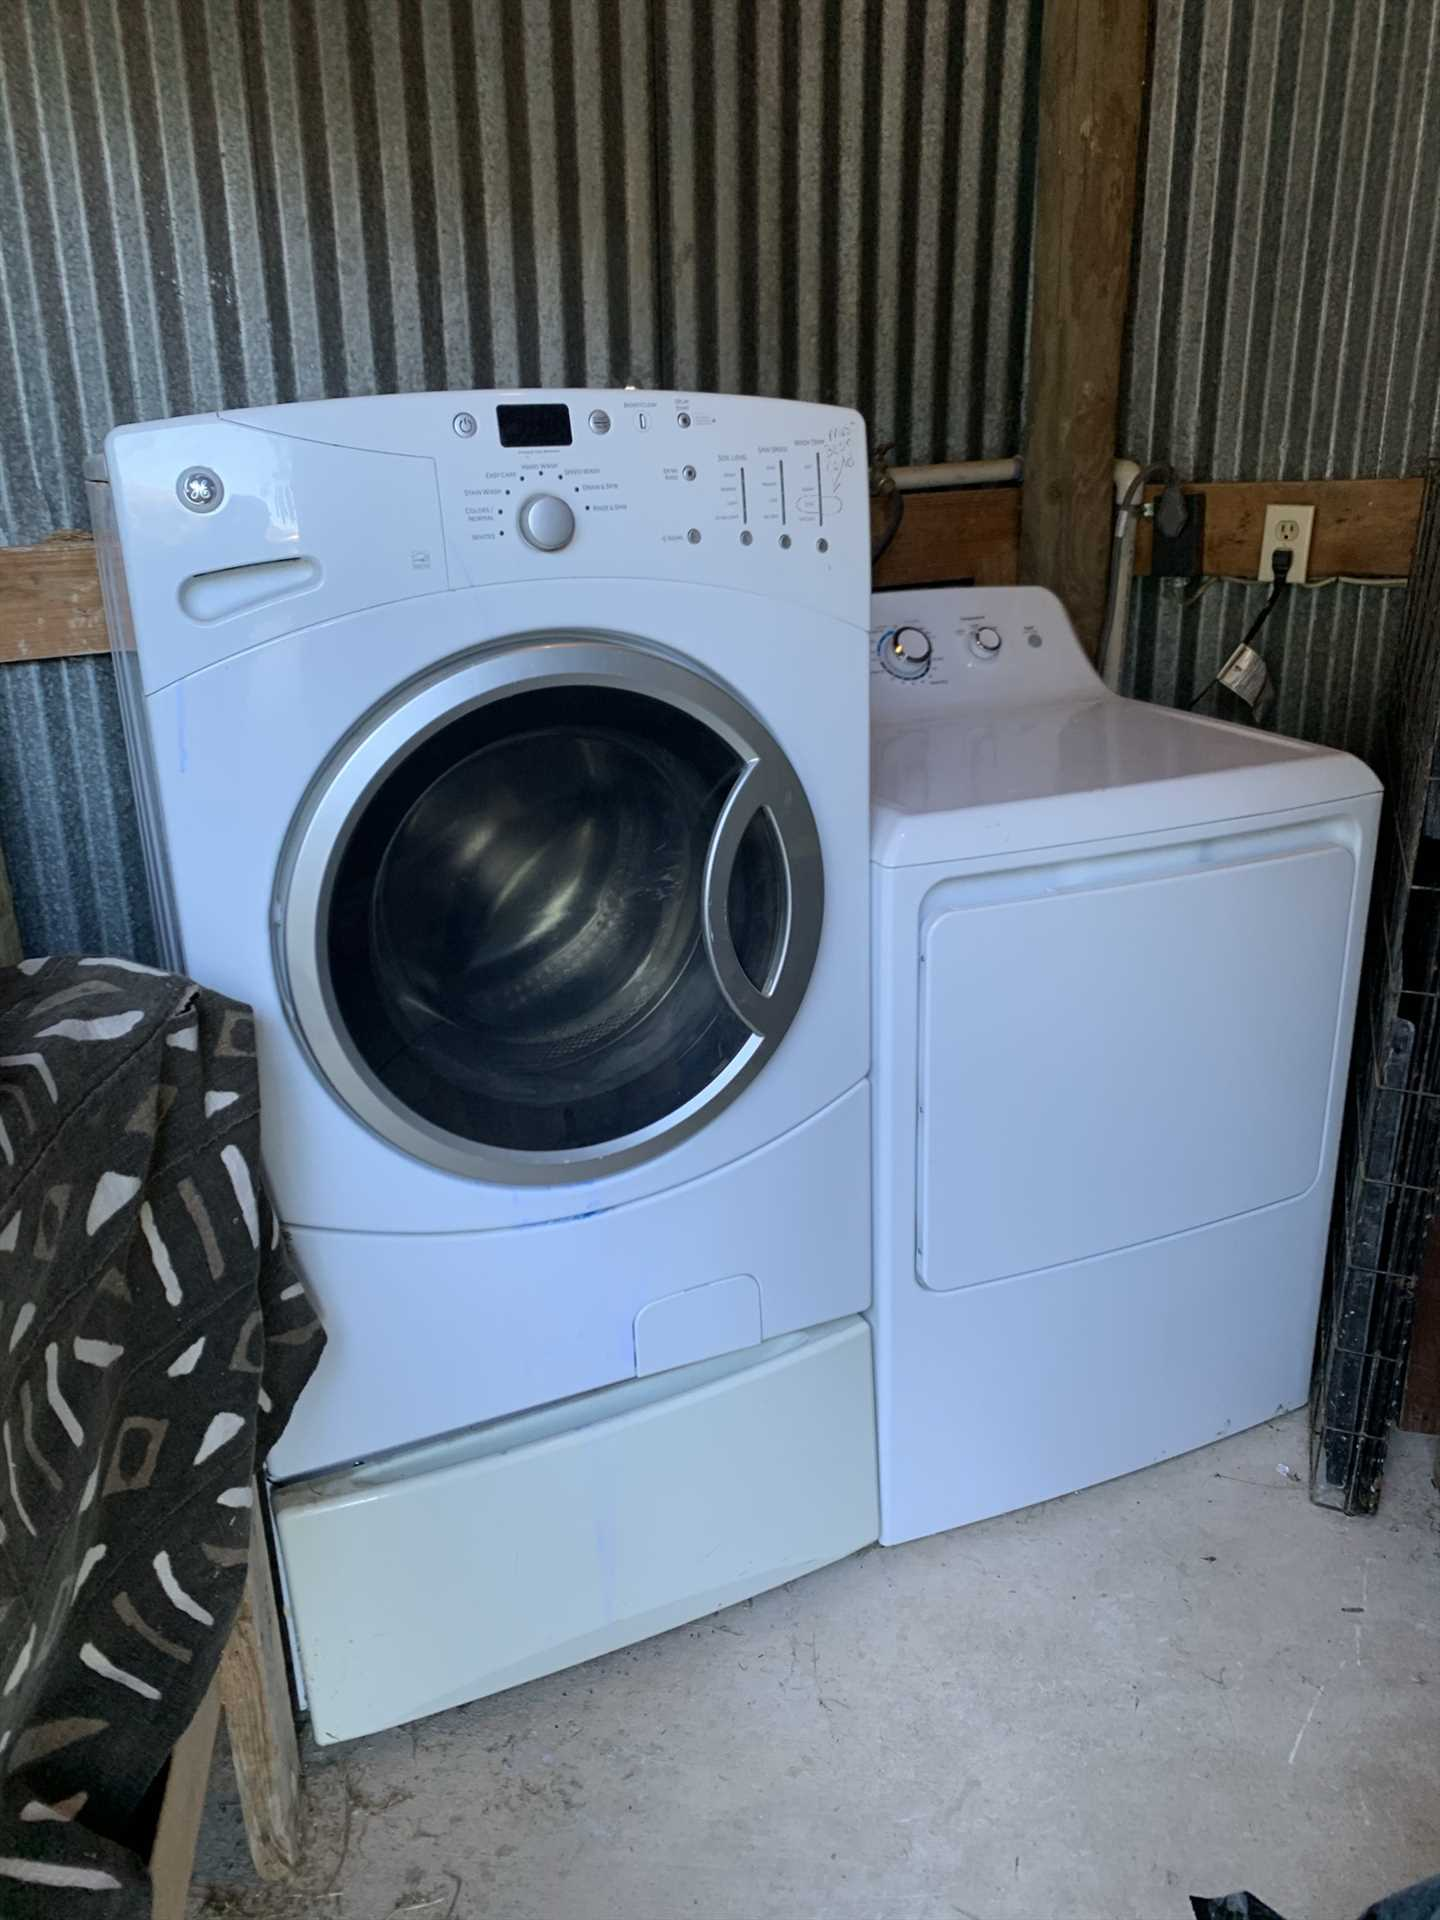 No piles of dirty clothes! Keep 'em clean with the on-side washer/dryer combo.